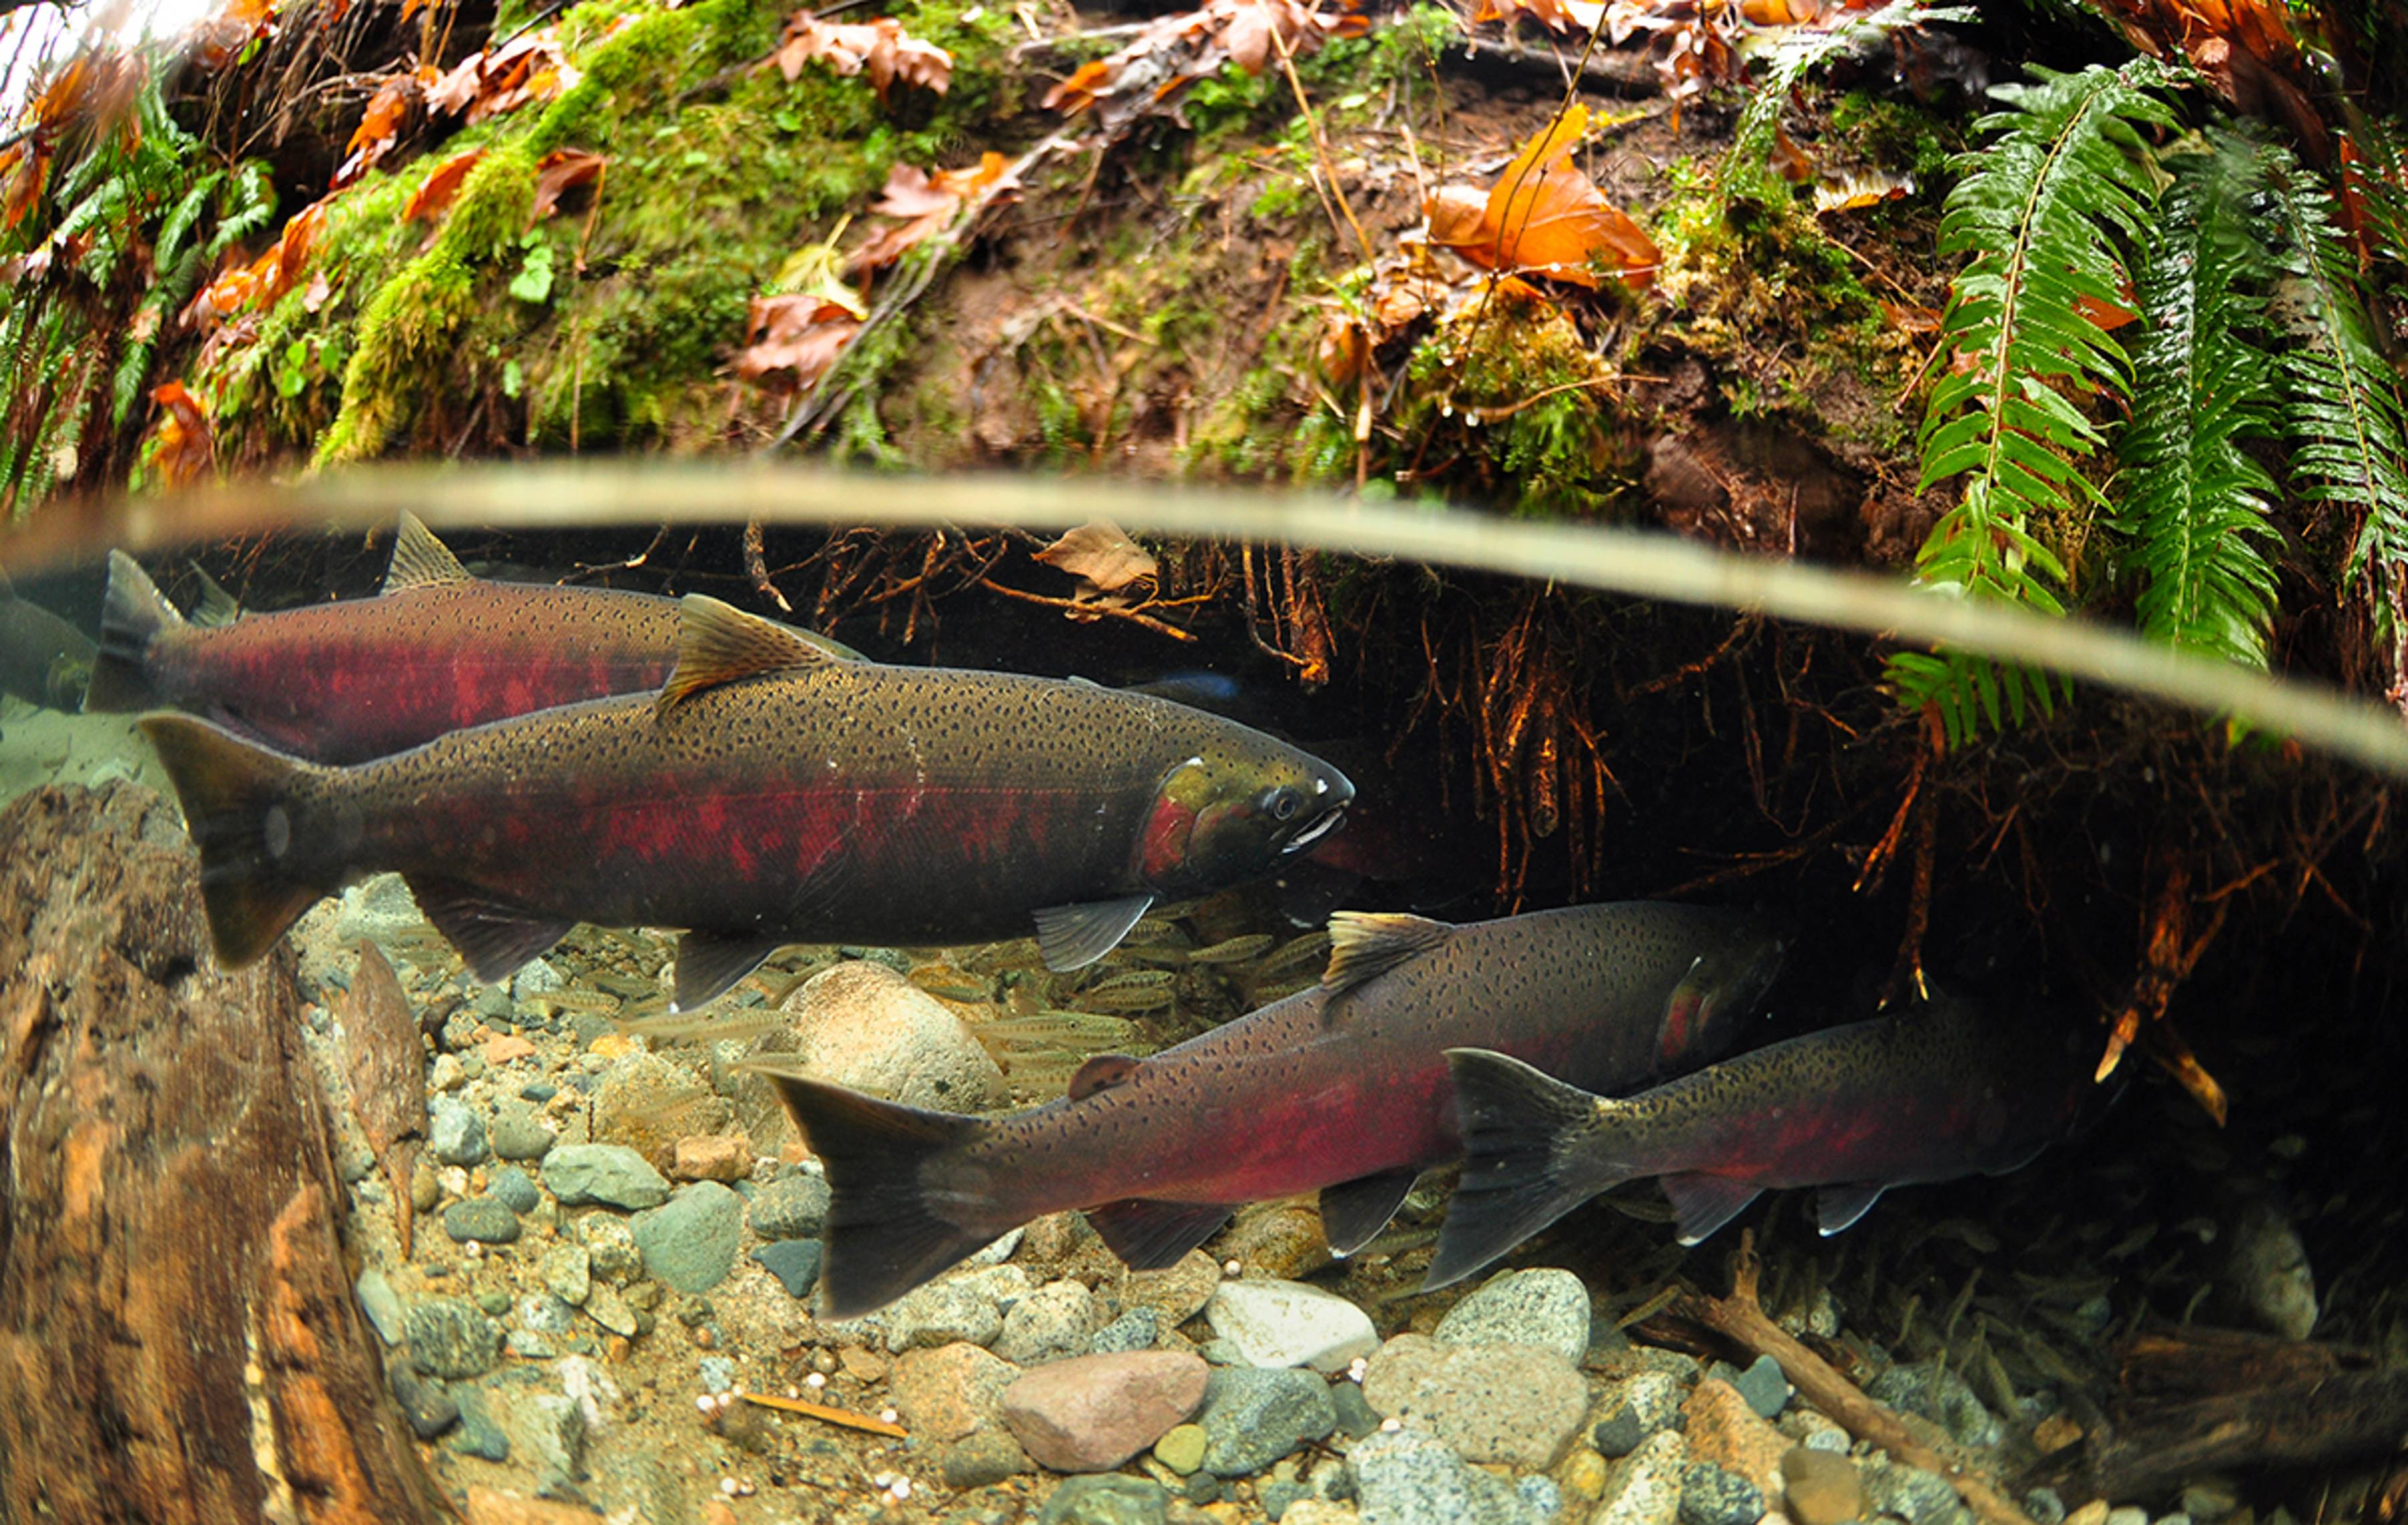 Underwater and salmon on pinterest for Fish and stream